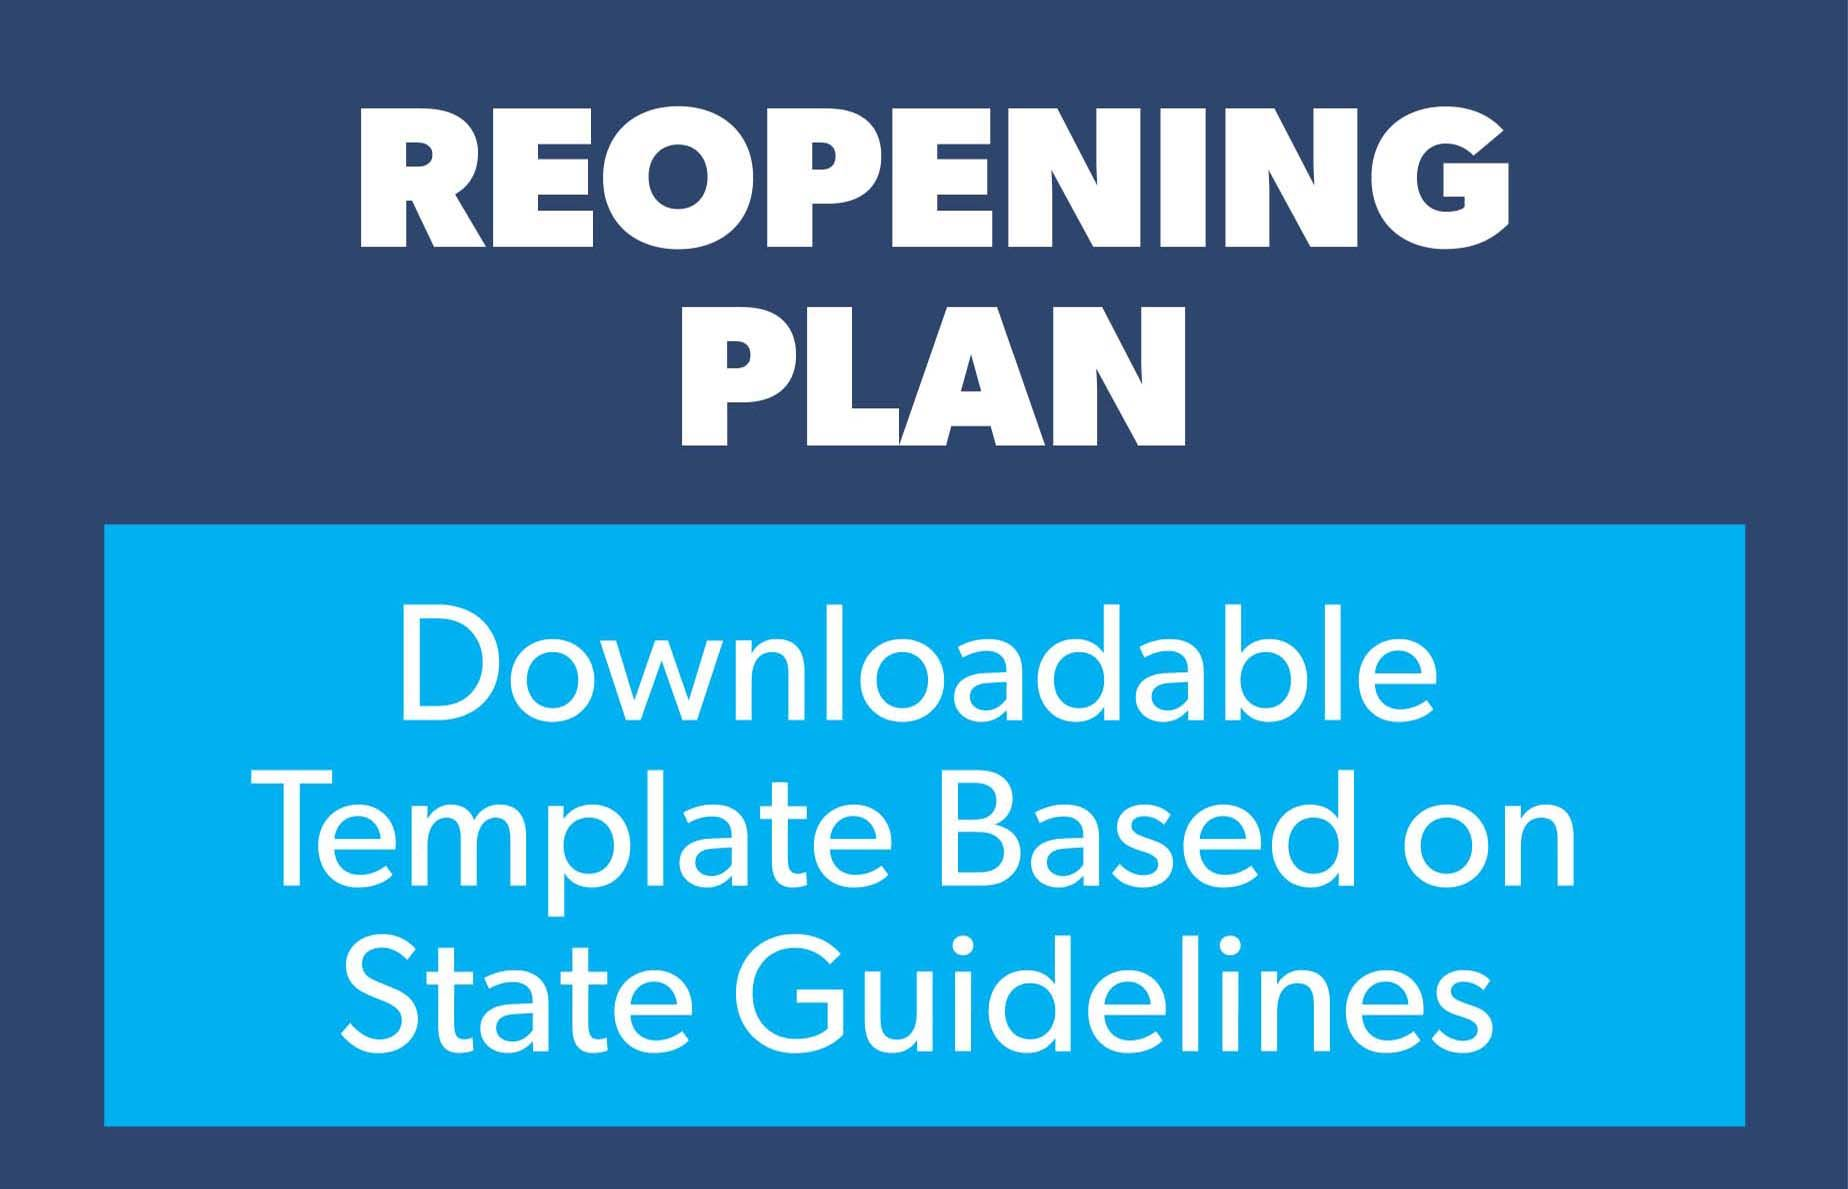 Reopening plan template